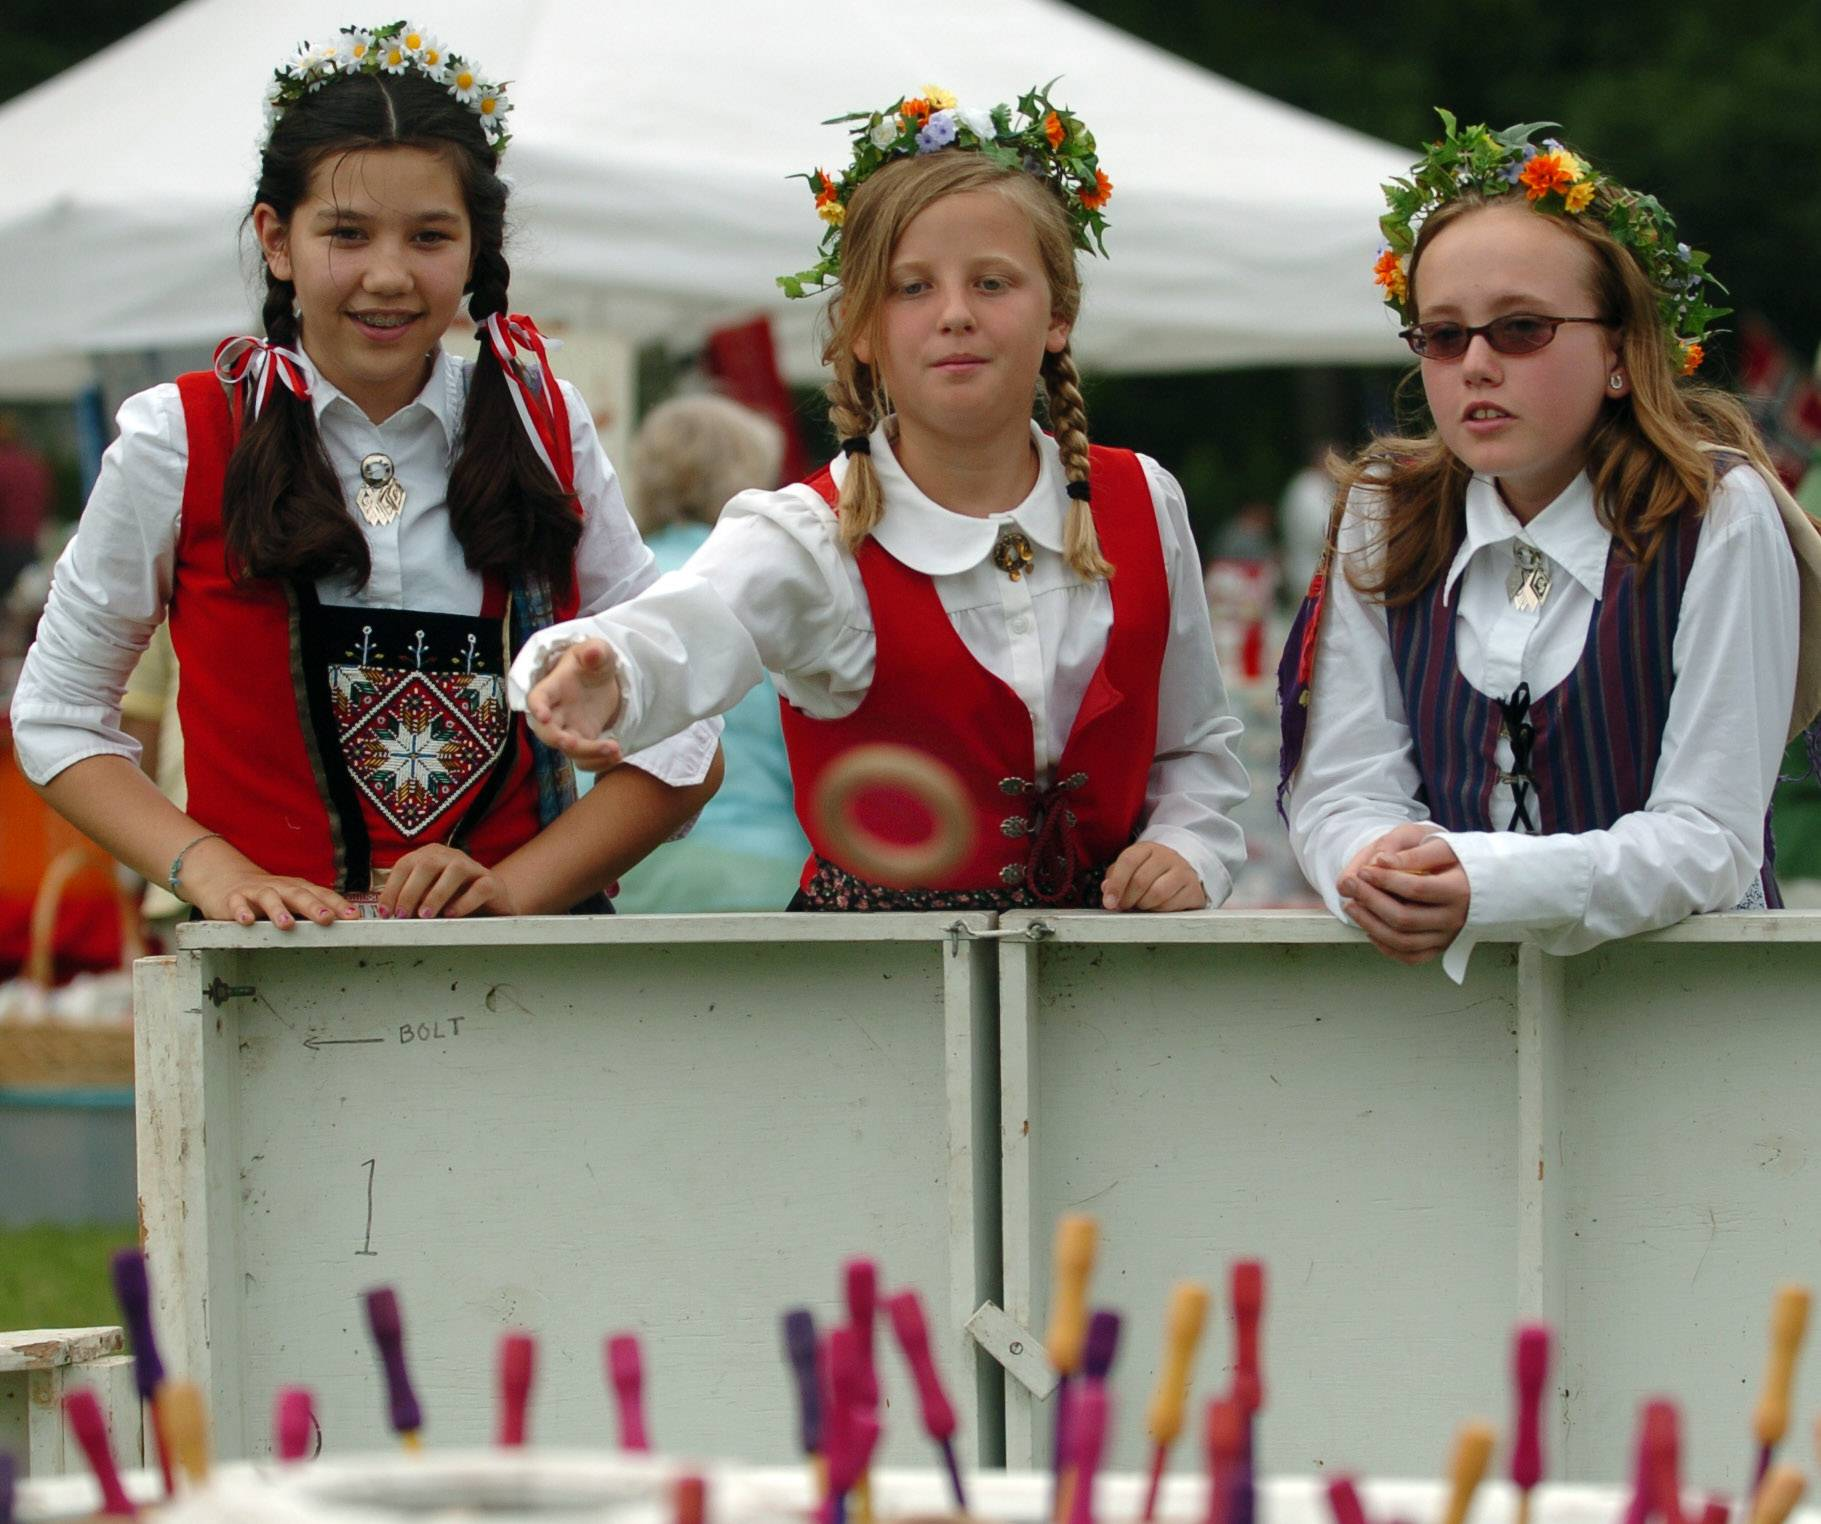 Anais Peterson, 13, of Batavia, left, and Lucy Smith, 11, of Geneva, right, watch Catherine Johnson, 11, of Huntley play the ring toss at the 100th annual celebration of the Swedish Day Midsommar Festival held at Good Templar Park in Geneva.